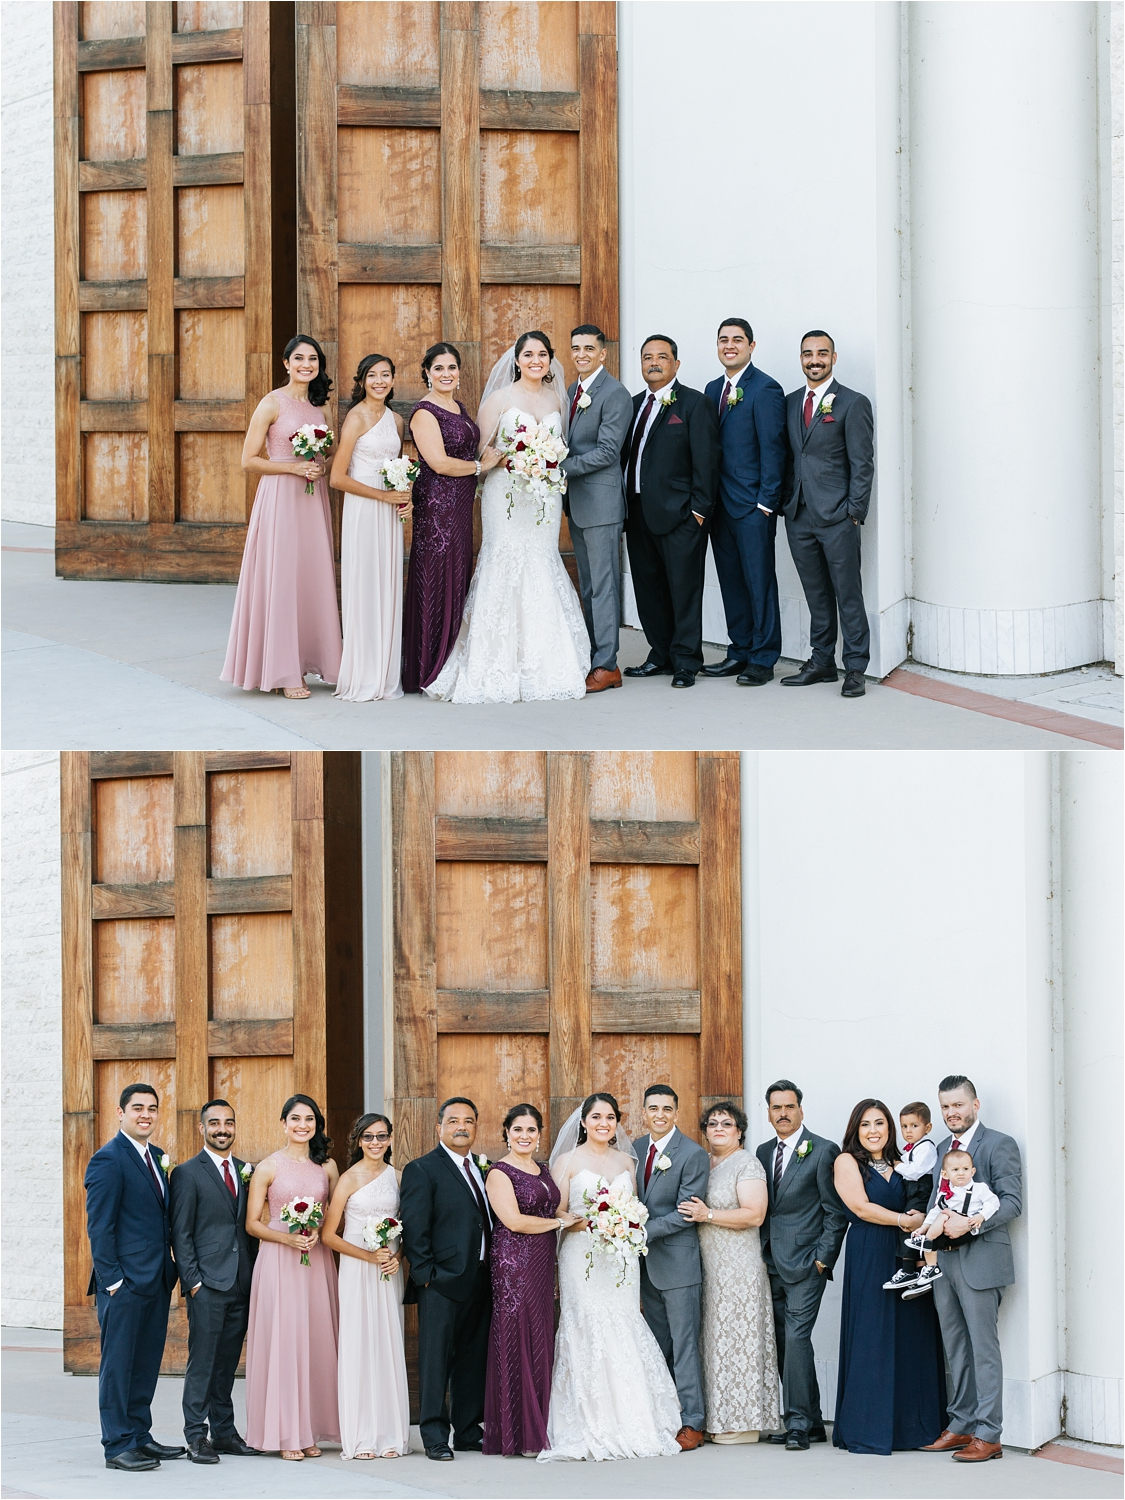 Family Photos at Wedding in Chino, CA - Wedding Photos - https://brittneyhannonphotography.com